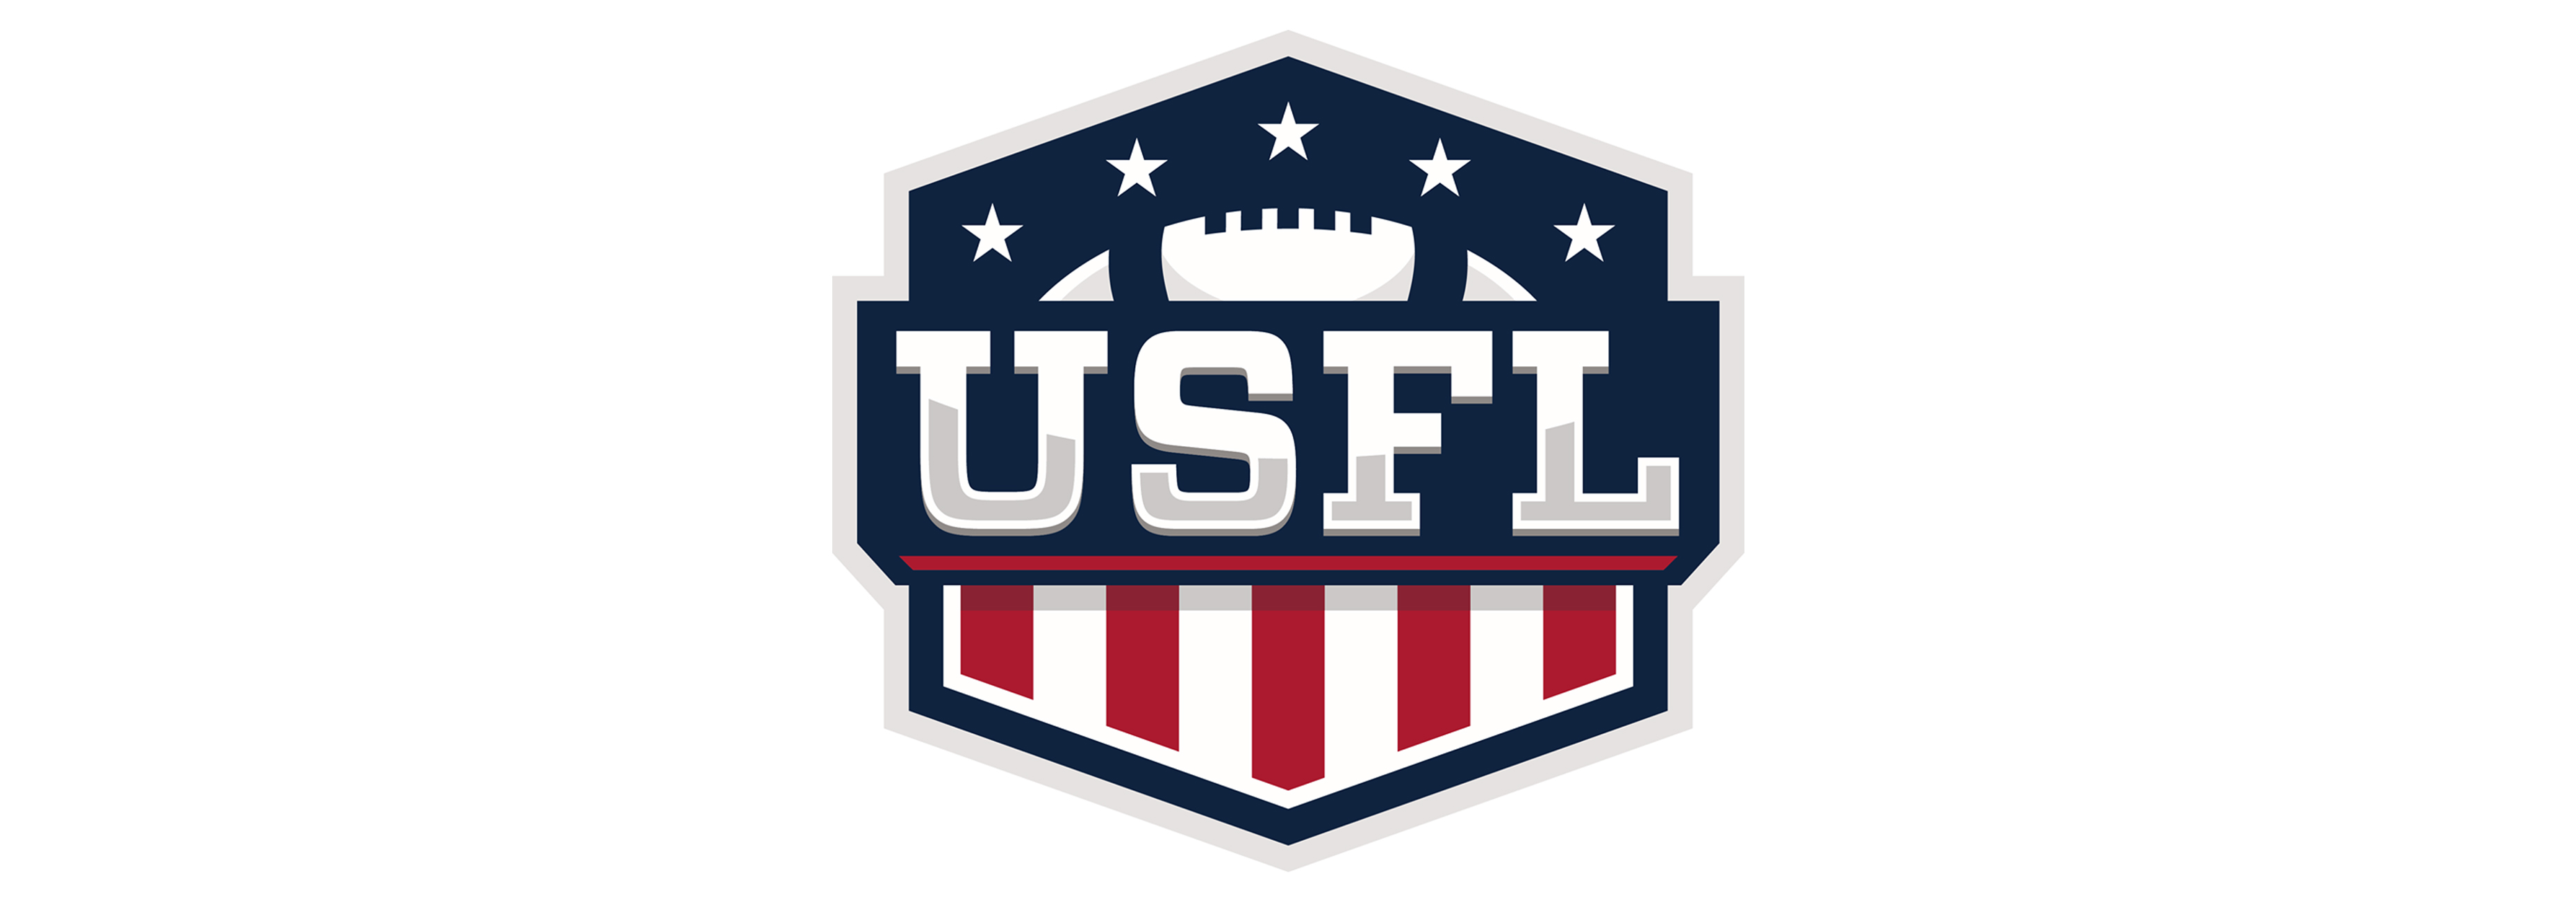 US Football League